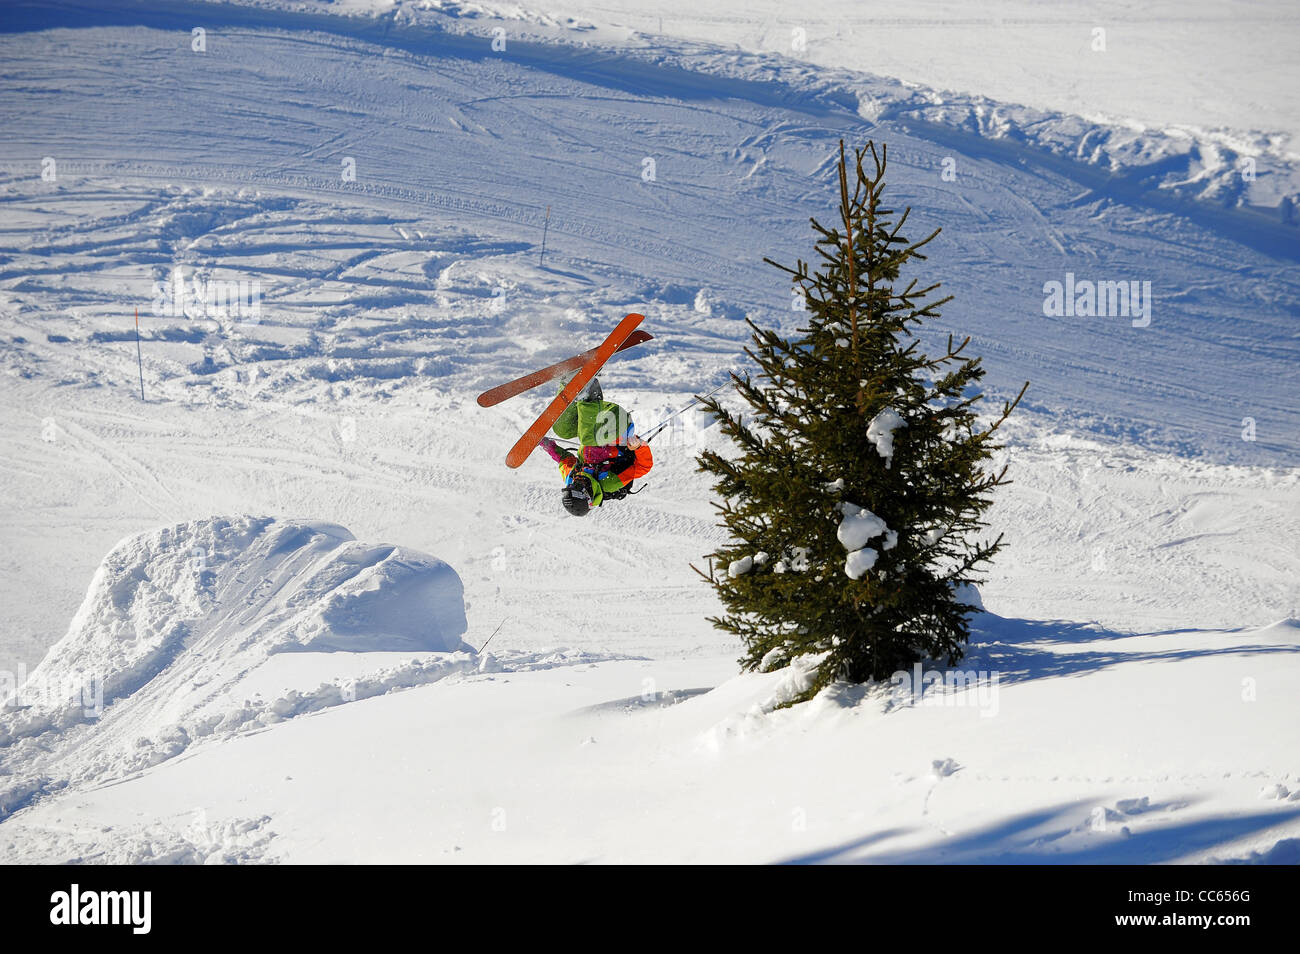 A skier performs a front flip in the French ski resort of Courchevel. - Stock Image